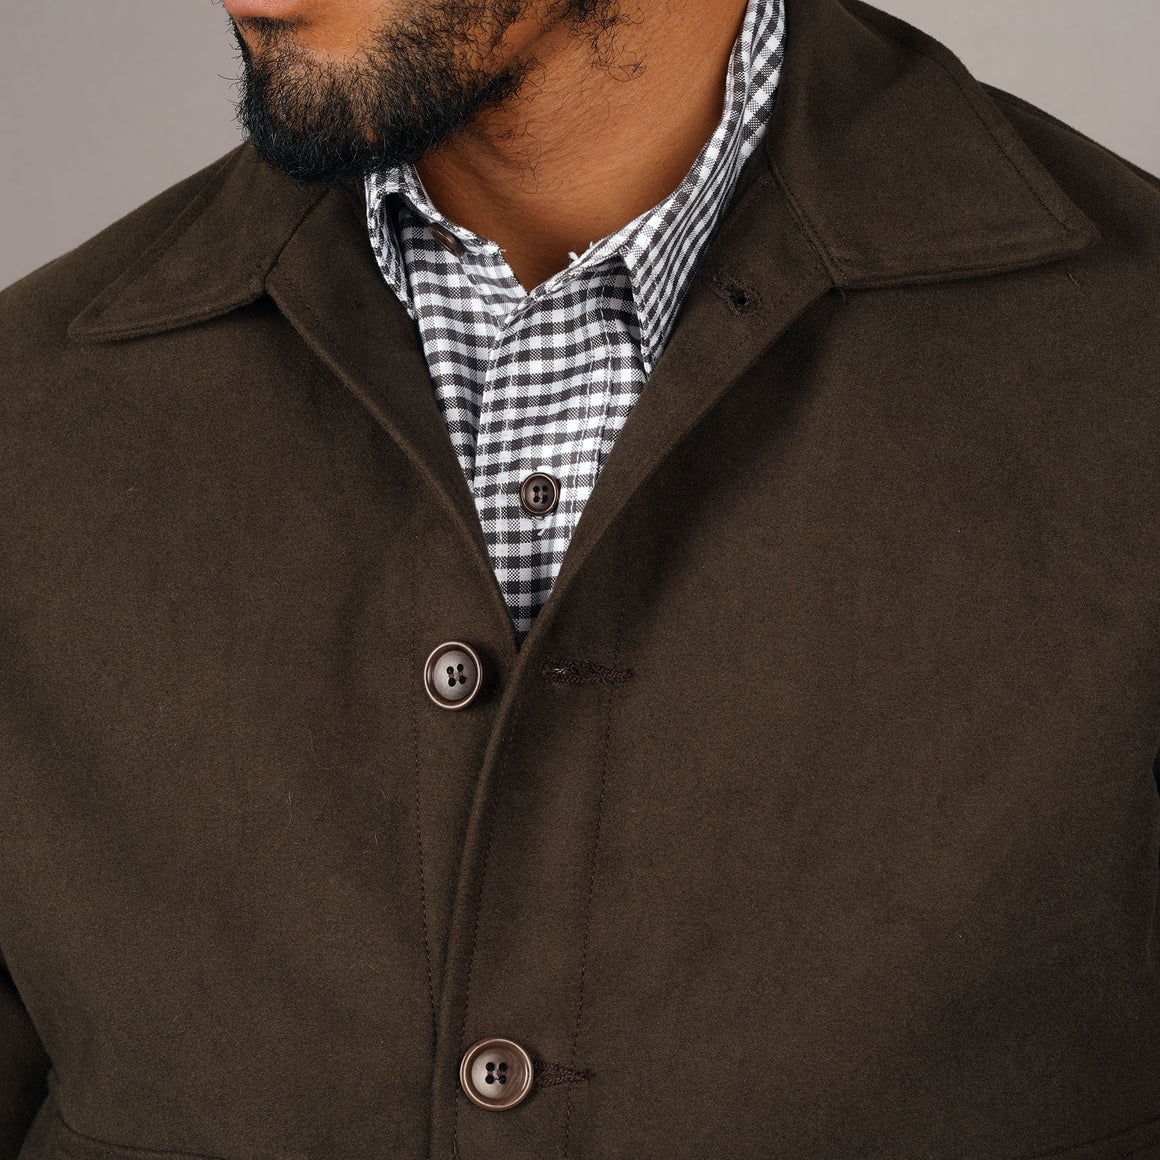 Bomber Jacket Brisbane Moss Chocolate Moleskin